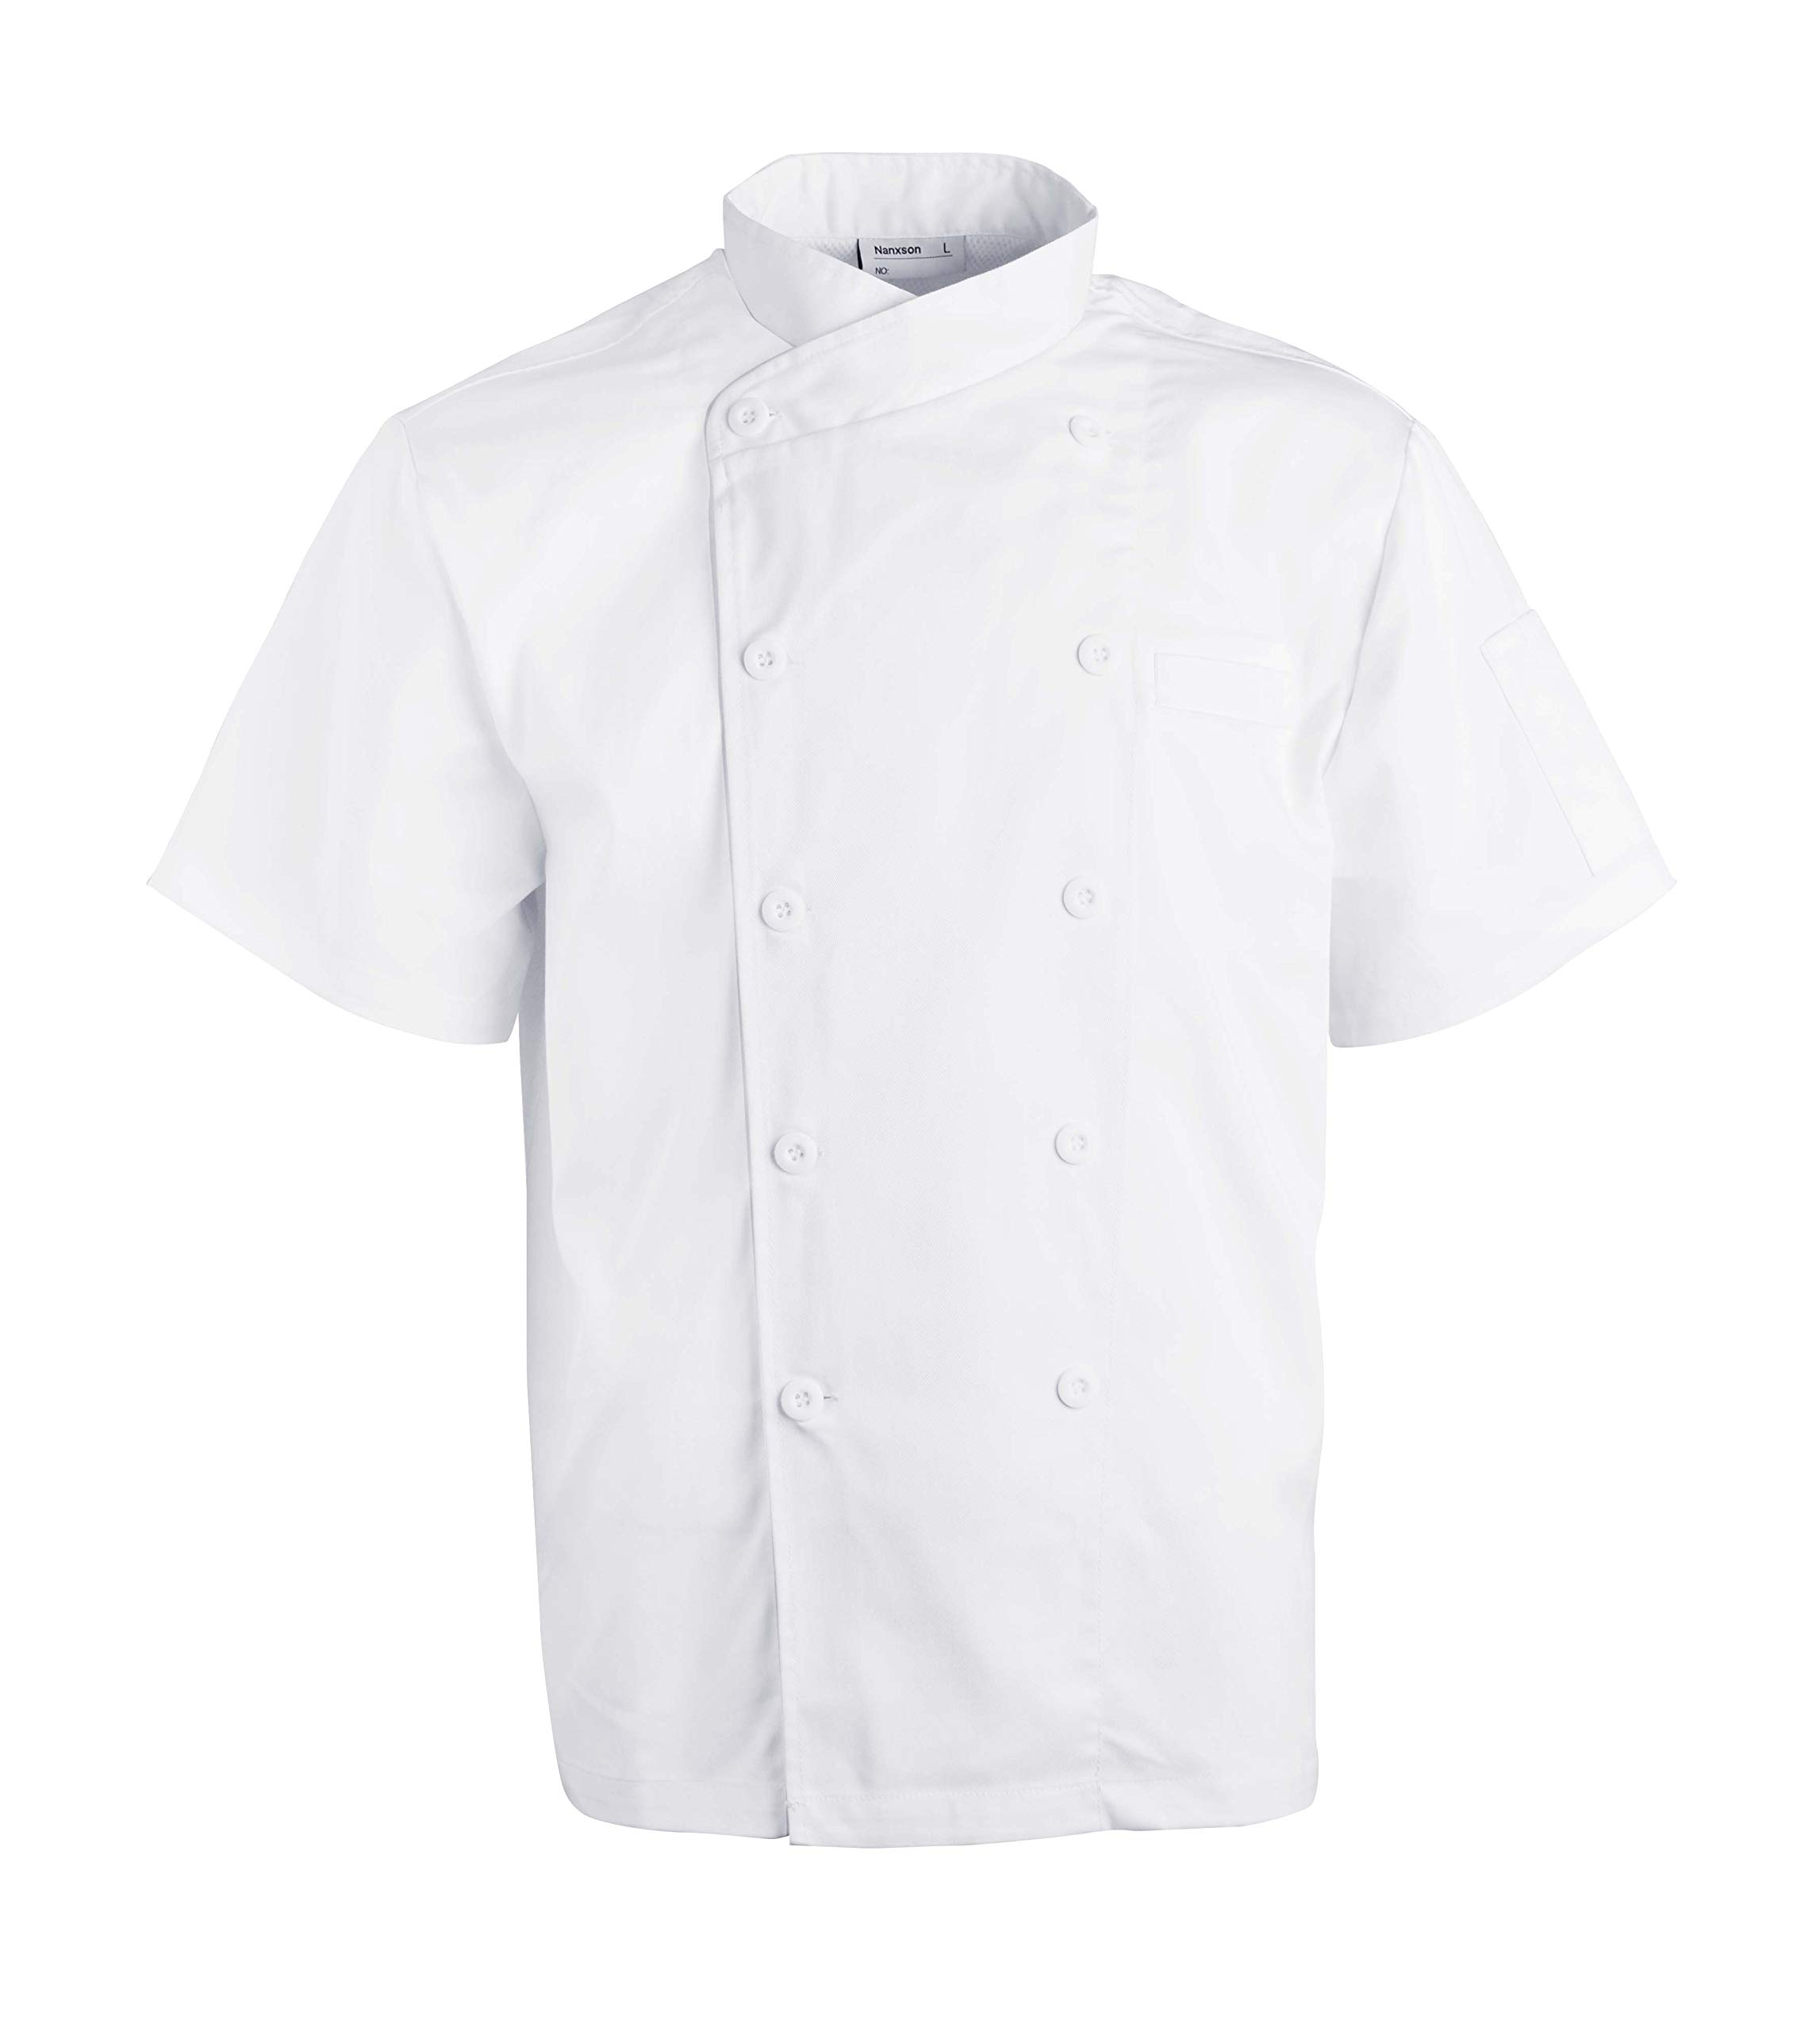 Nanxson(TM Kitchen Cotton Uniform Chef Working Coat with Air Mesh CFM0029 (White Short Sleeves, M)